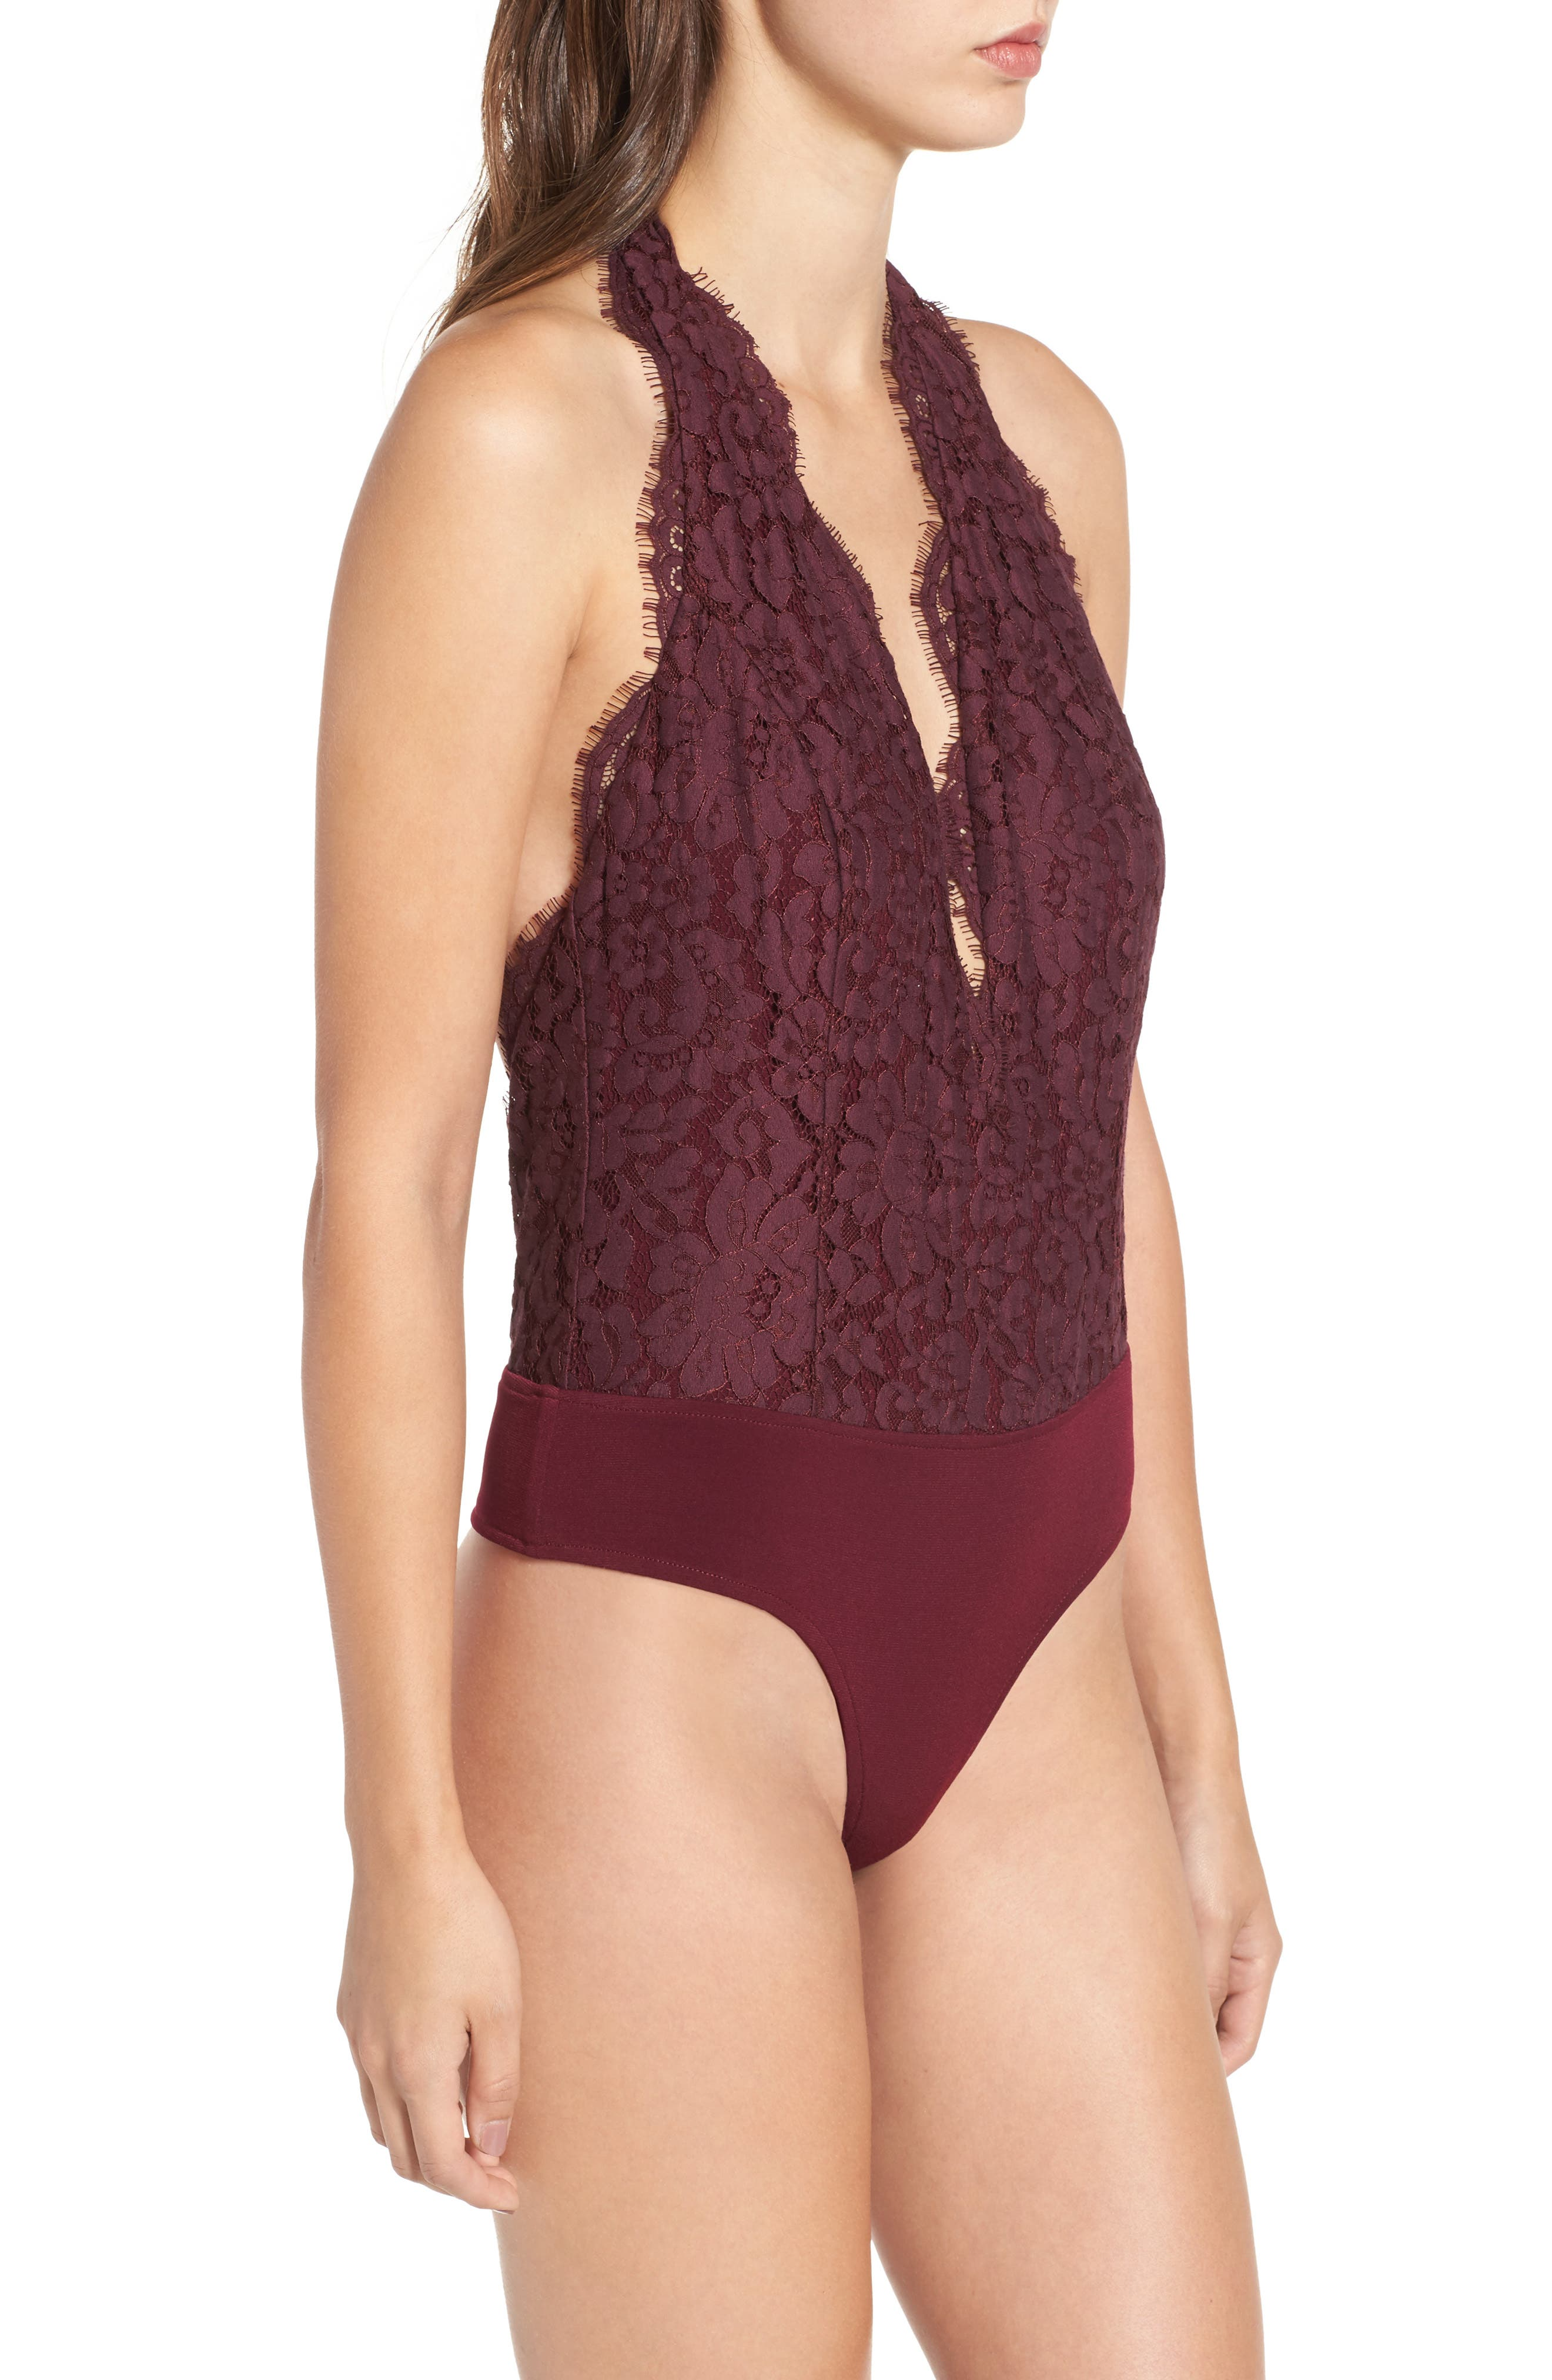 Rosalyn Lace Thong Bodysuit,                             Alternate thumbnail 4, color,                             Merlot